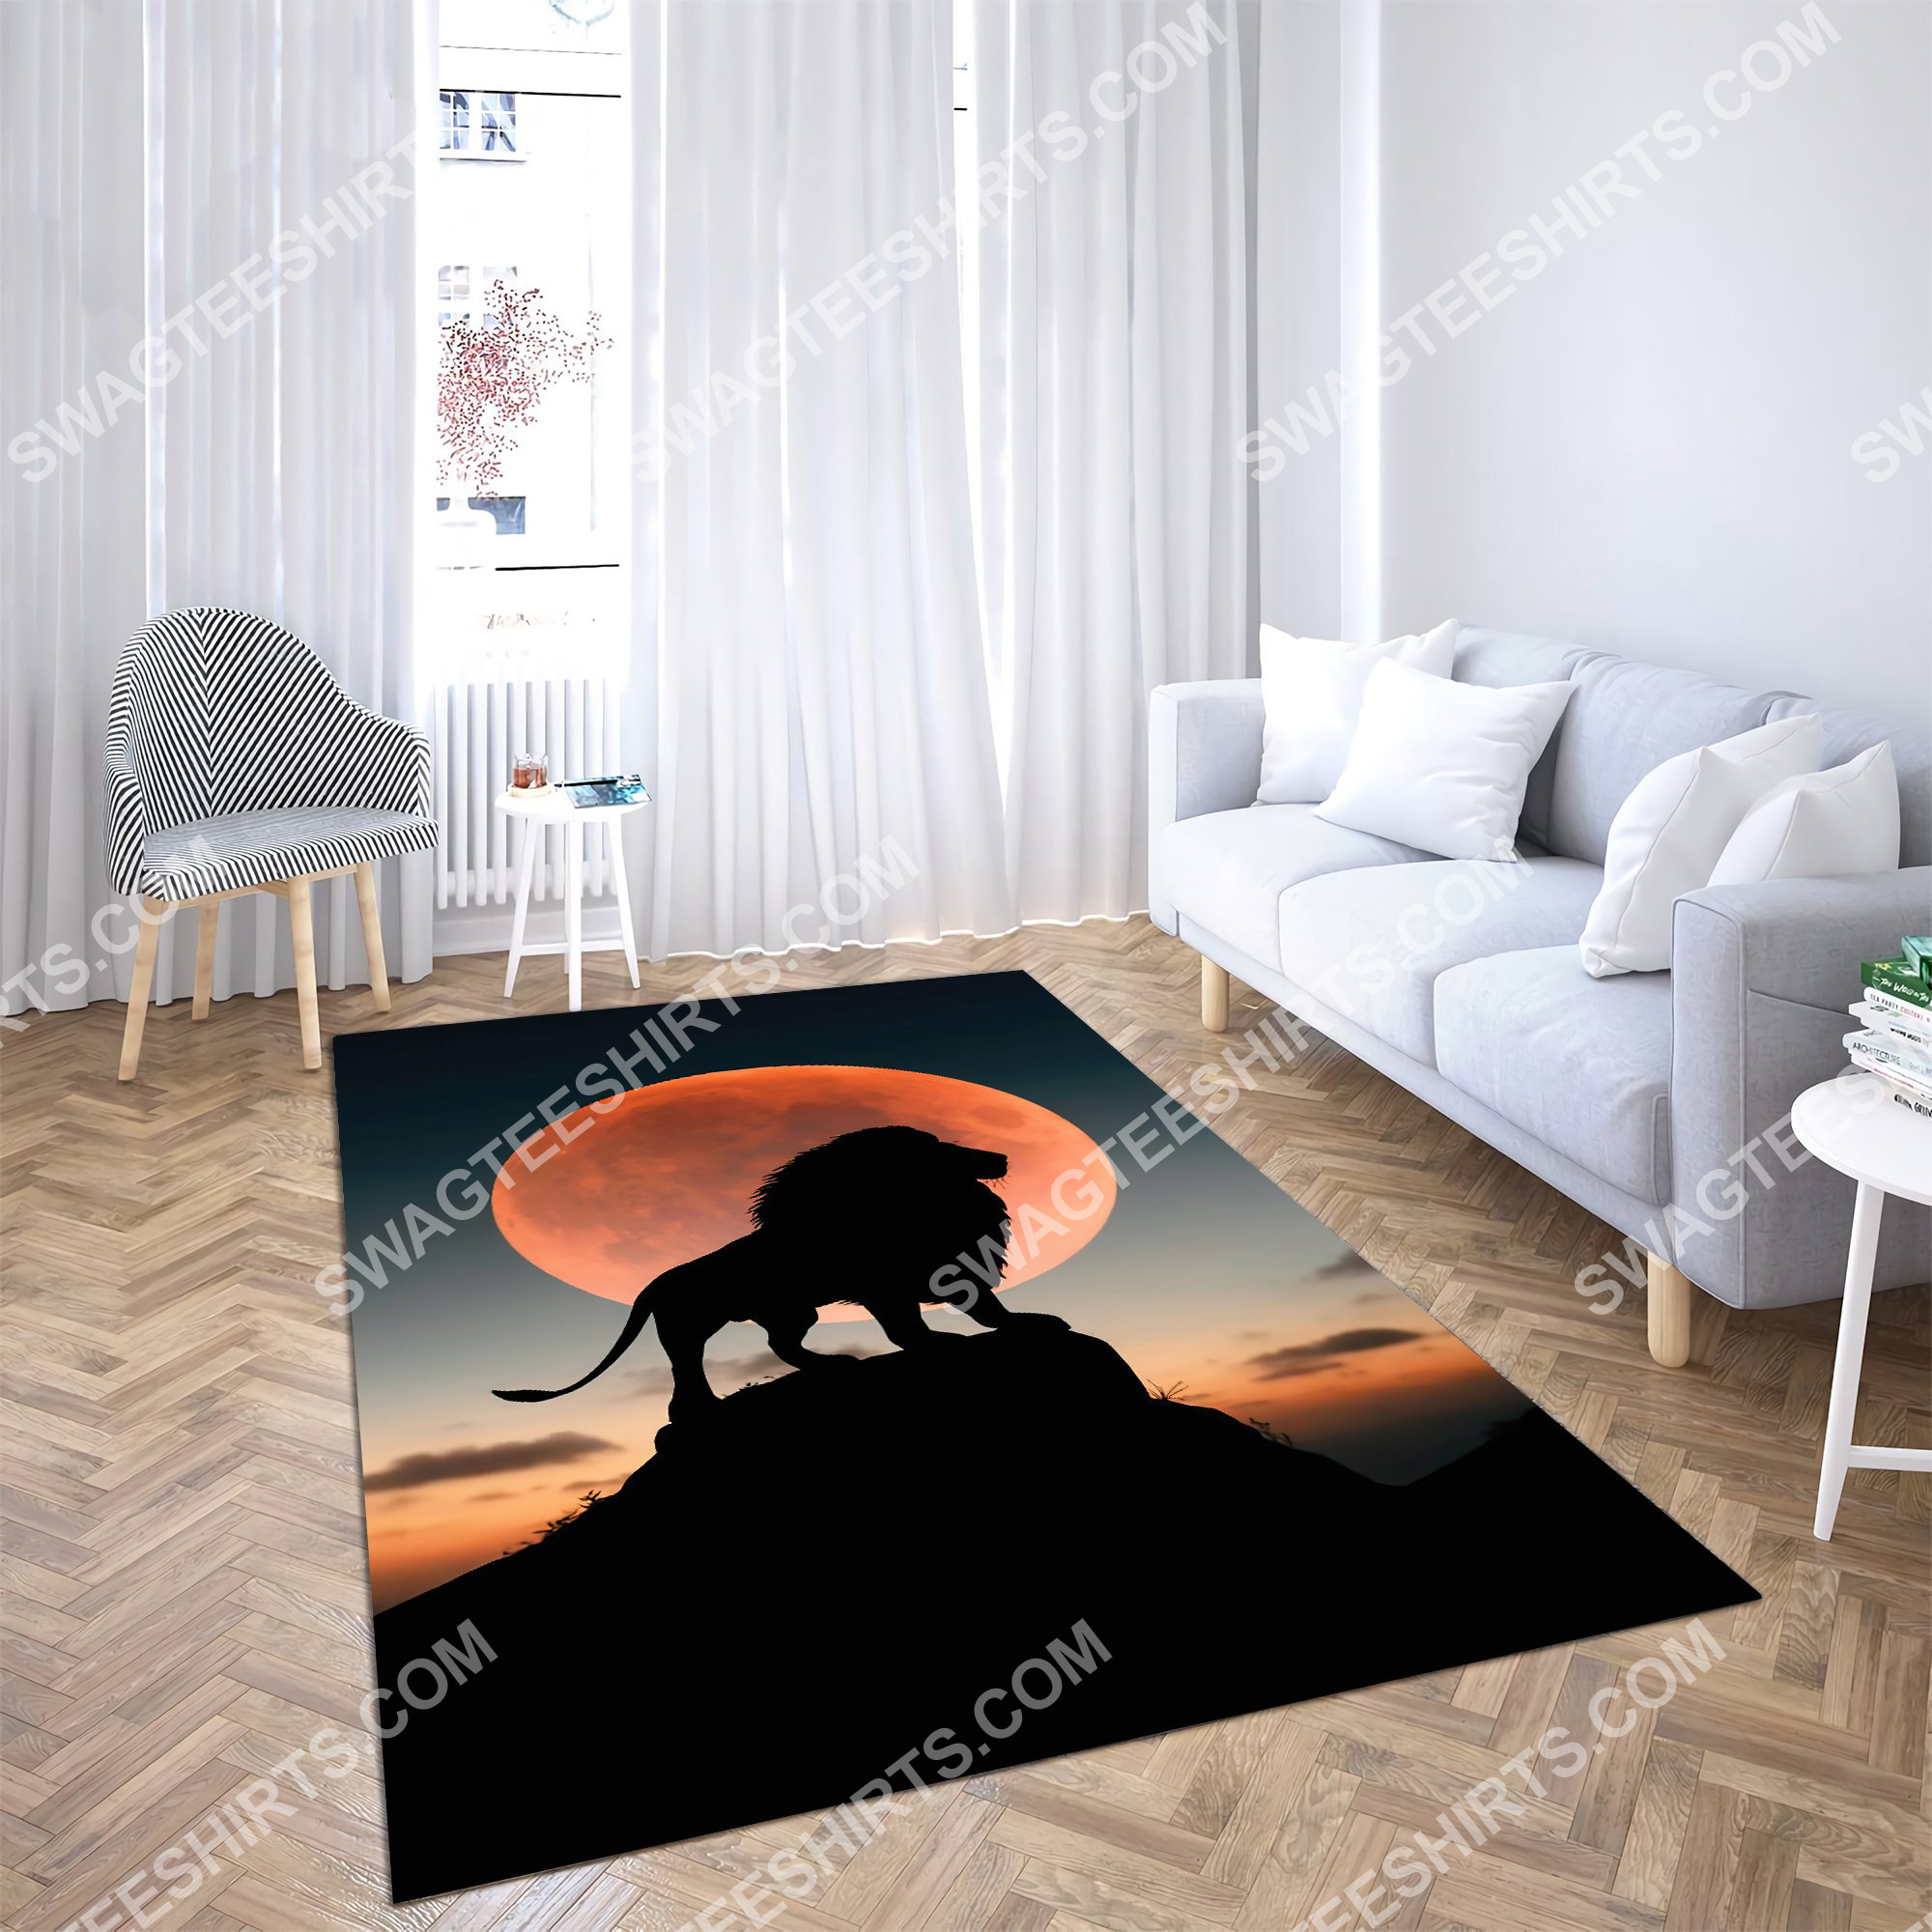 the lion in sunset all over printed rug 2(1)